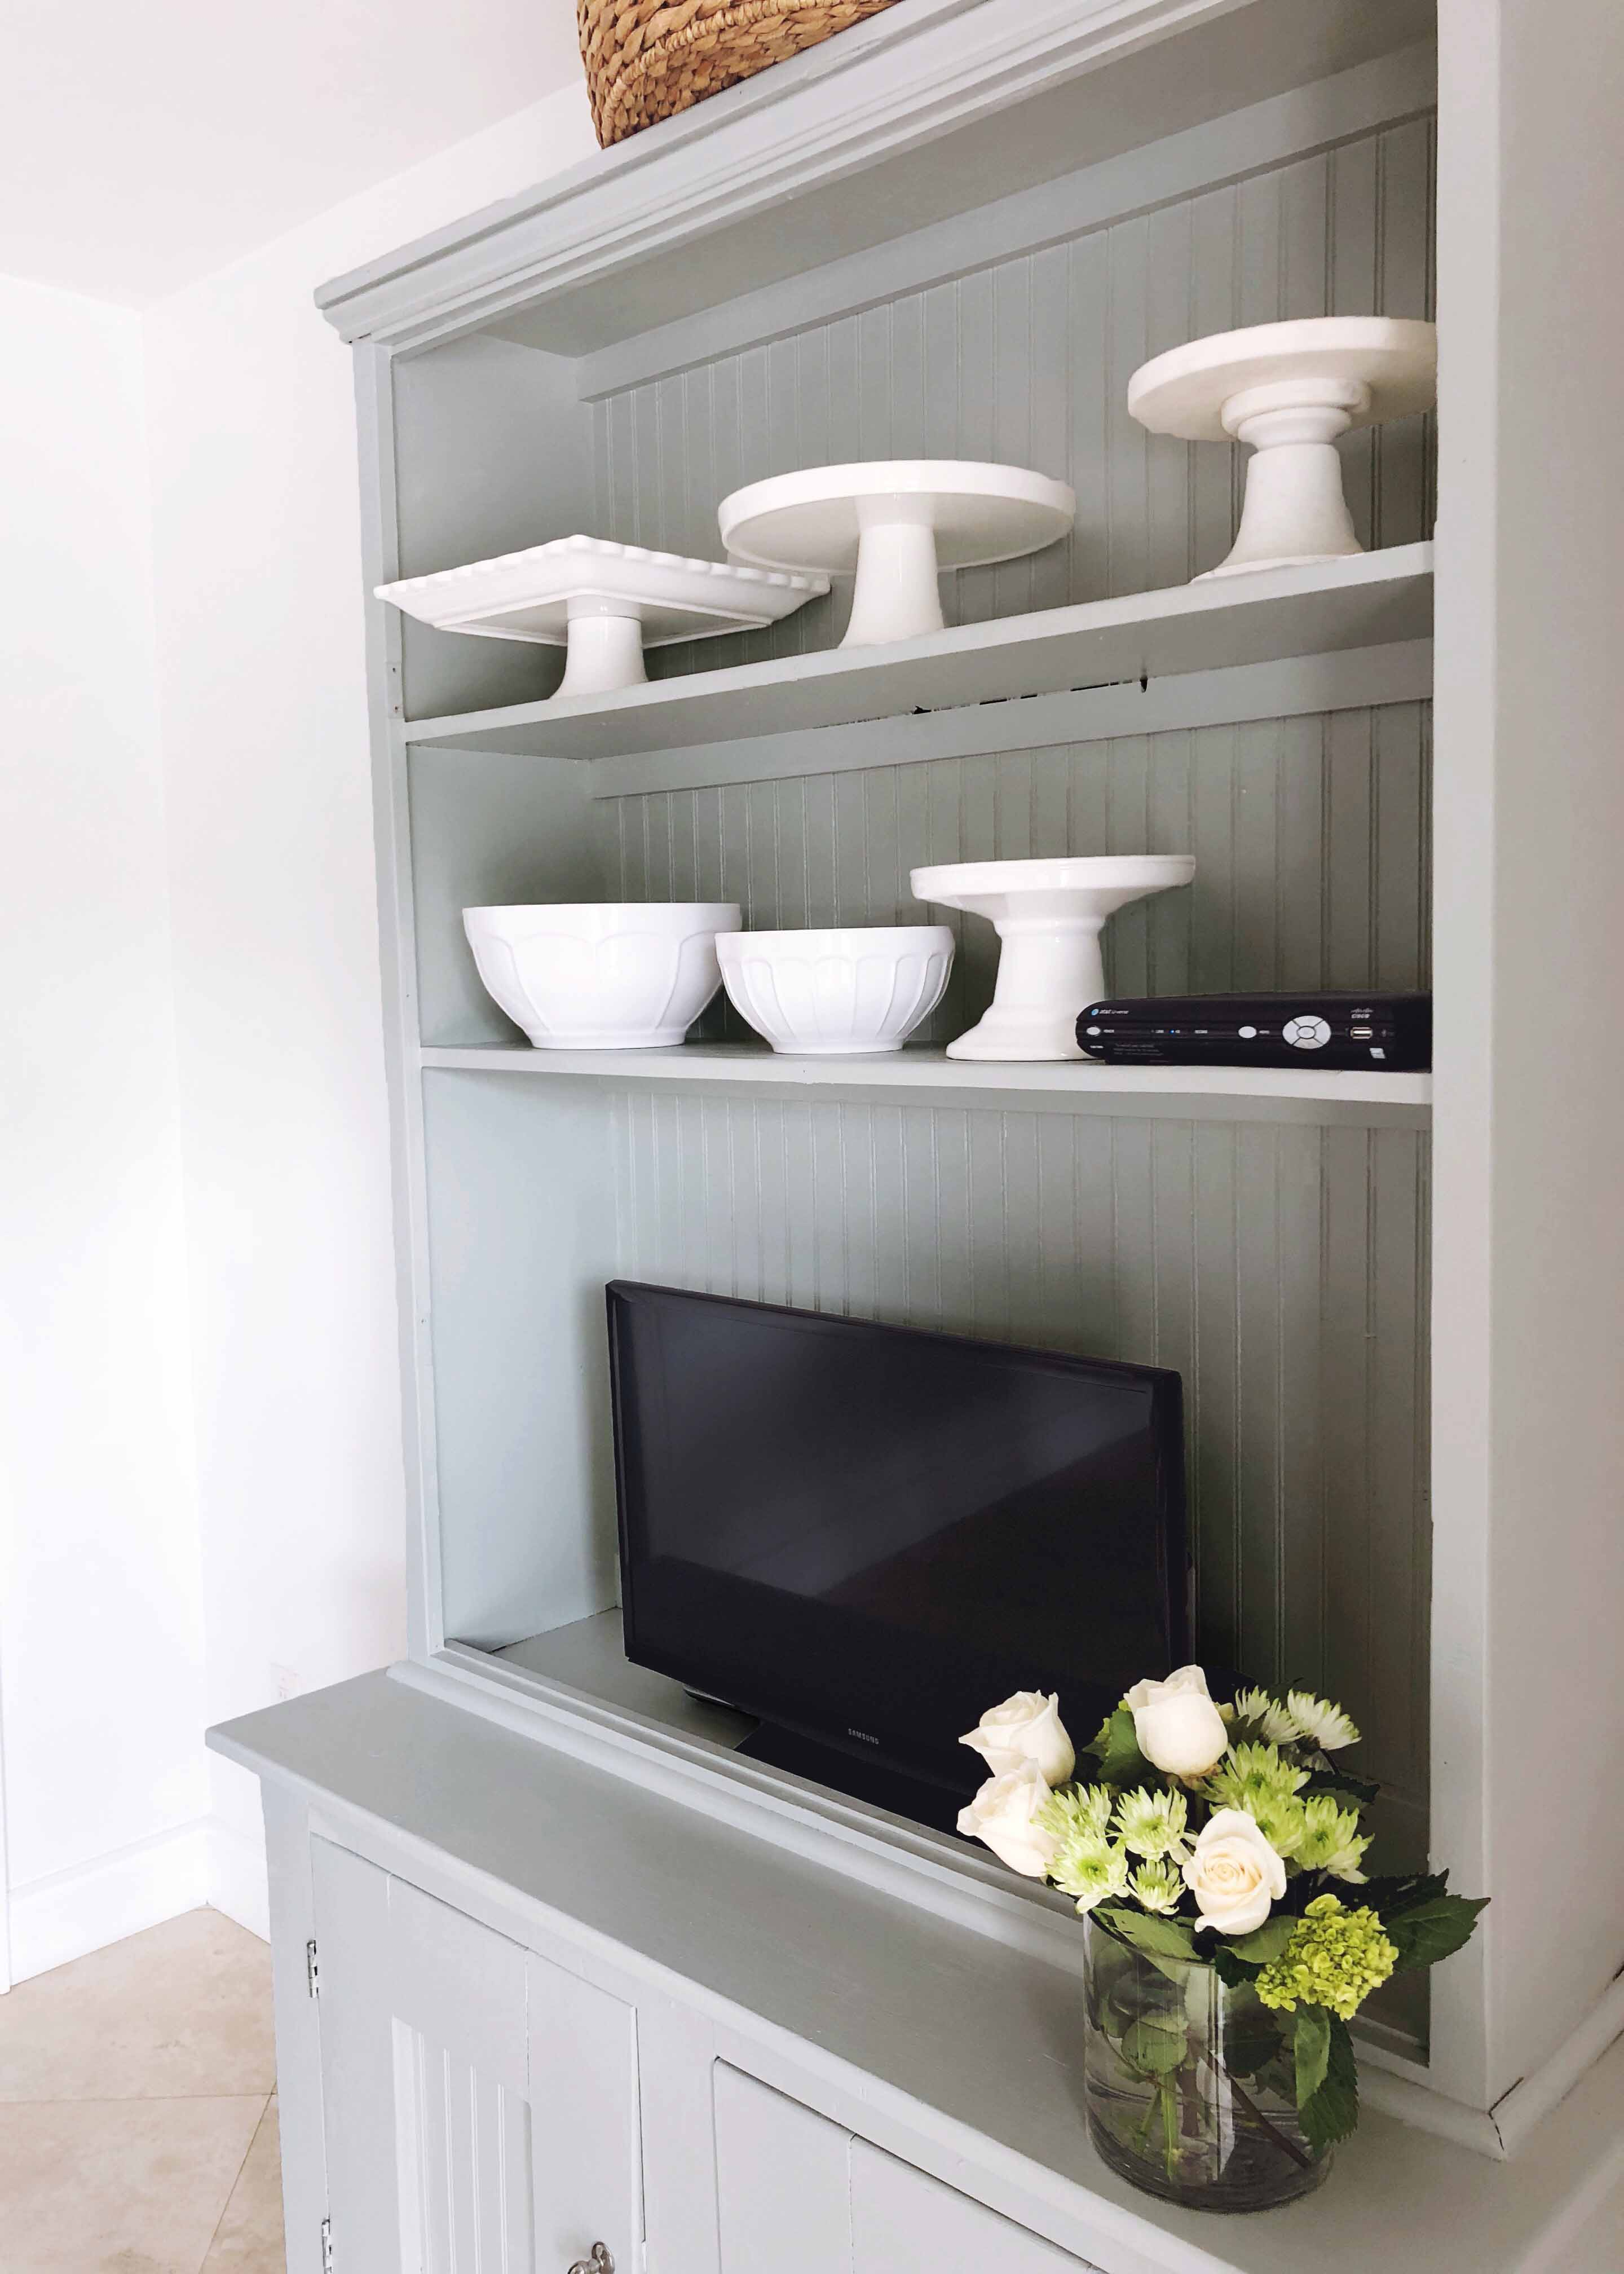 Take a peek at a beautiful painted furniture transformation plus get 4 must-read tips for painting furniture like a pro!